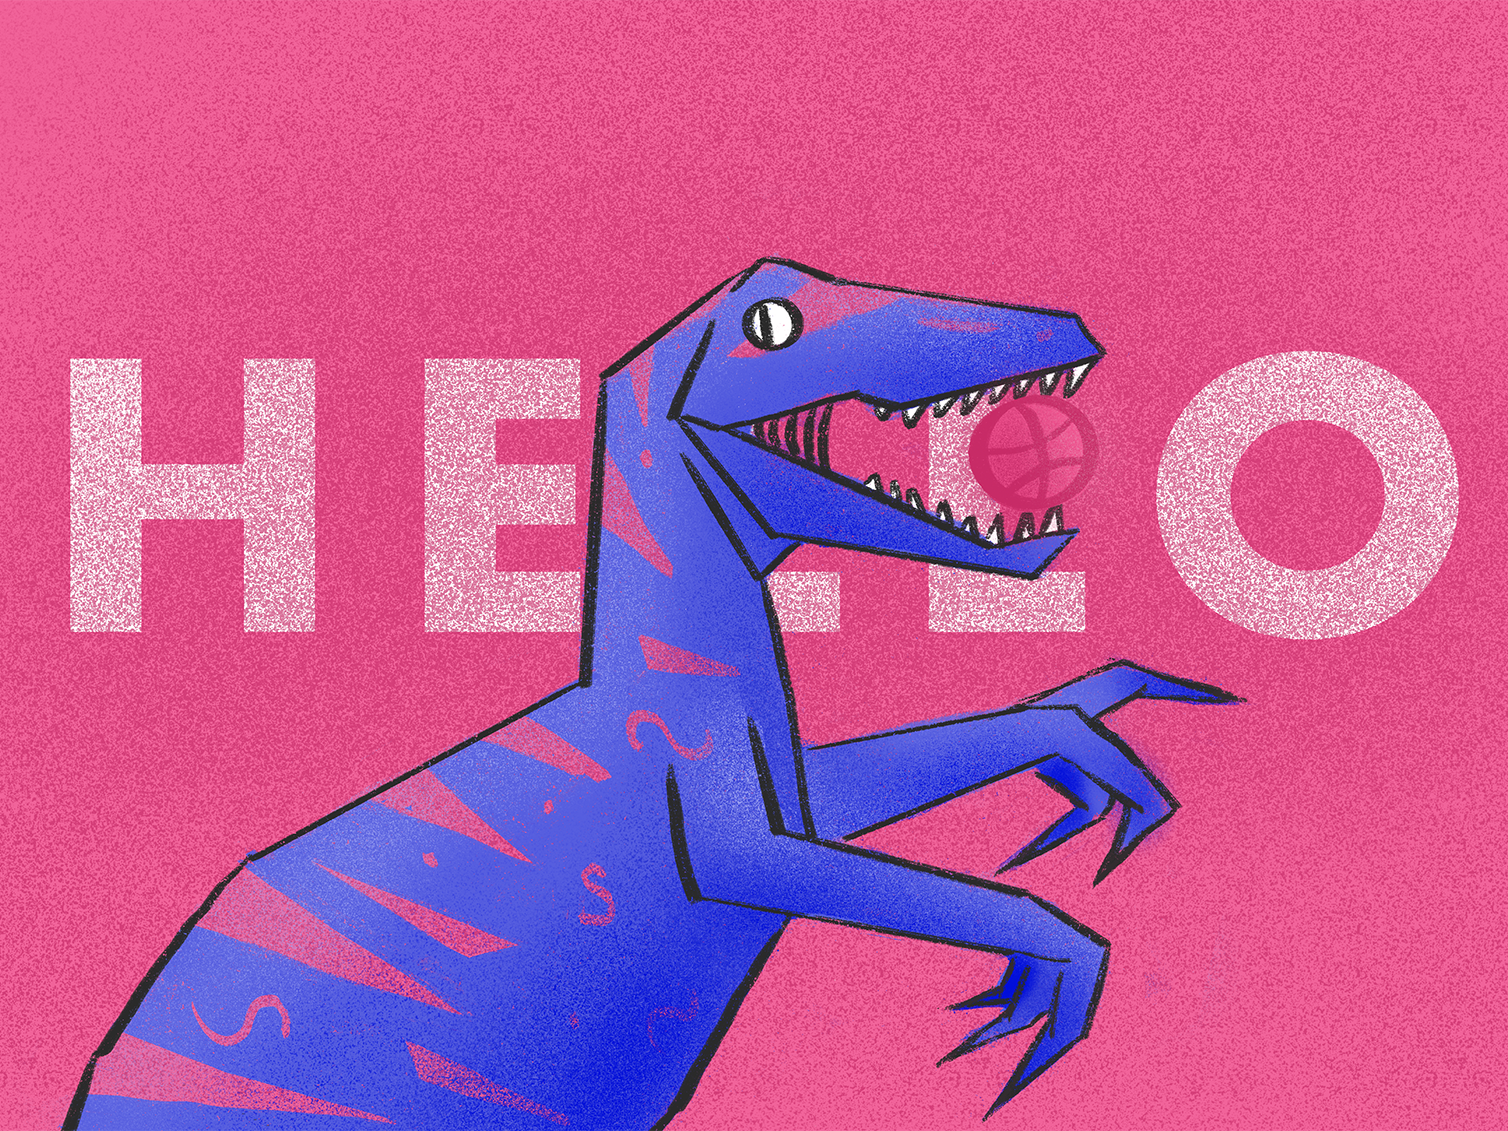 Dribbblosaur debut hello dribble first post first shot firstshot purple pink procreate dinosaurus dinosaur dino drawing concept character creative colorful flat vector design illustration